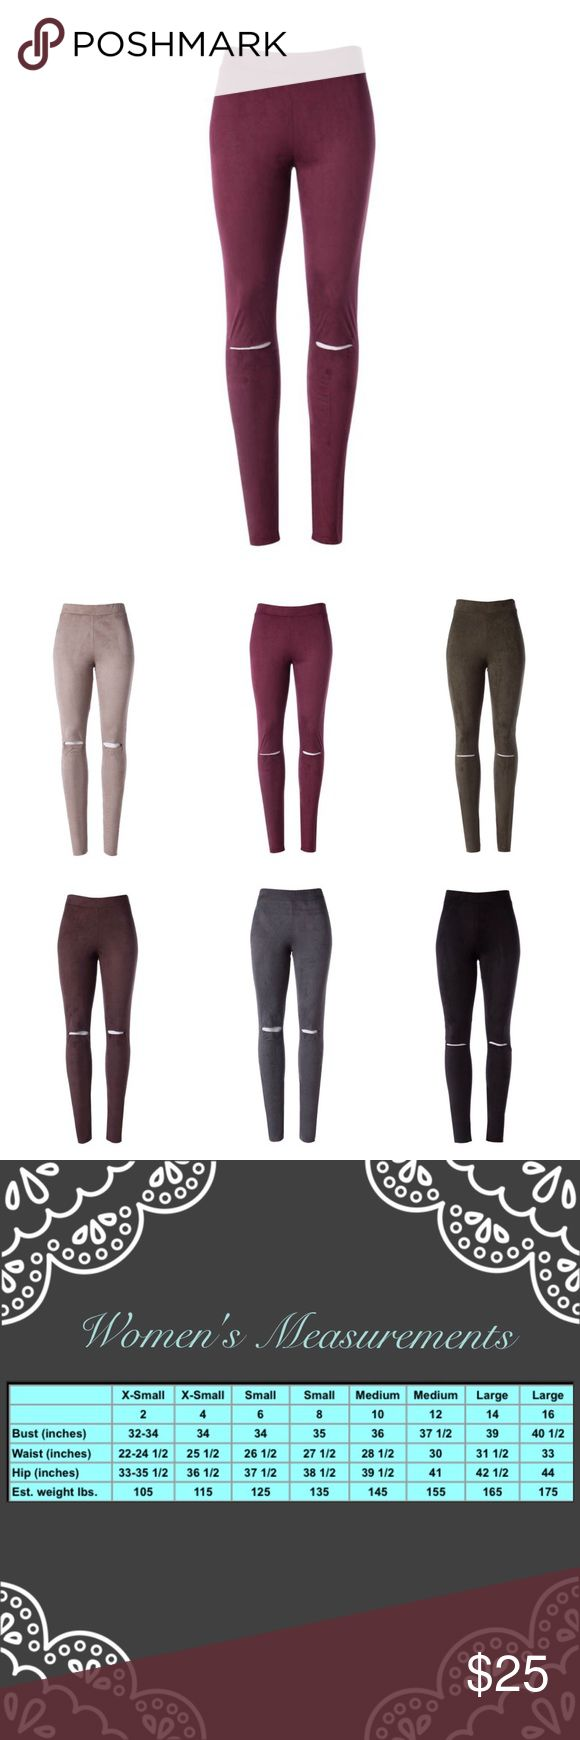 "High Rise Suede Leggings With Slit Detail High rise elastic waist, slit by knee, suede knit skinny pants.  🔸96% Polyester 4% Spandex 🔸Made in USA 🔸Size Small Measurement: W: 13"" H: 38"" Inseam: 29""  Available in the following colors: Brown, Charcoal, Olive, Taupe, Wine	  ✔️Serious buyers please & No Low ballers!  To me it's asking half or more off an item is Low Balling.   ✔️Please understand the sizes listed on the size chart are different between manufacturers & suppliers & this chart…"